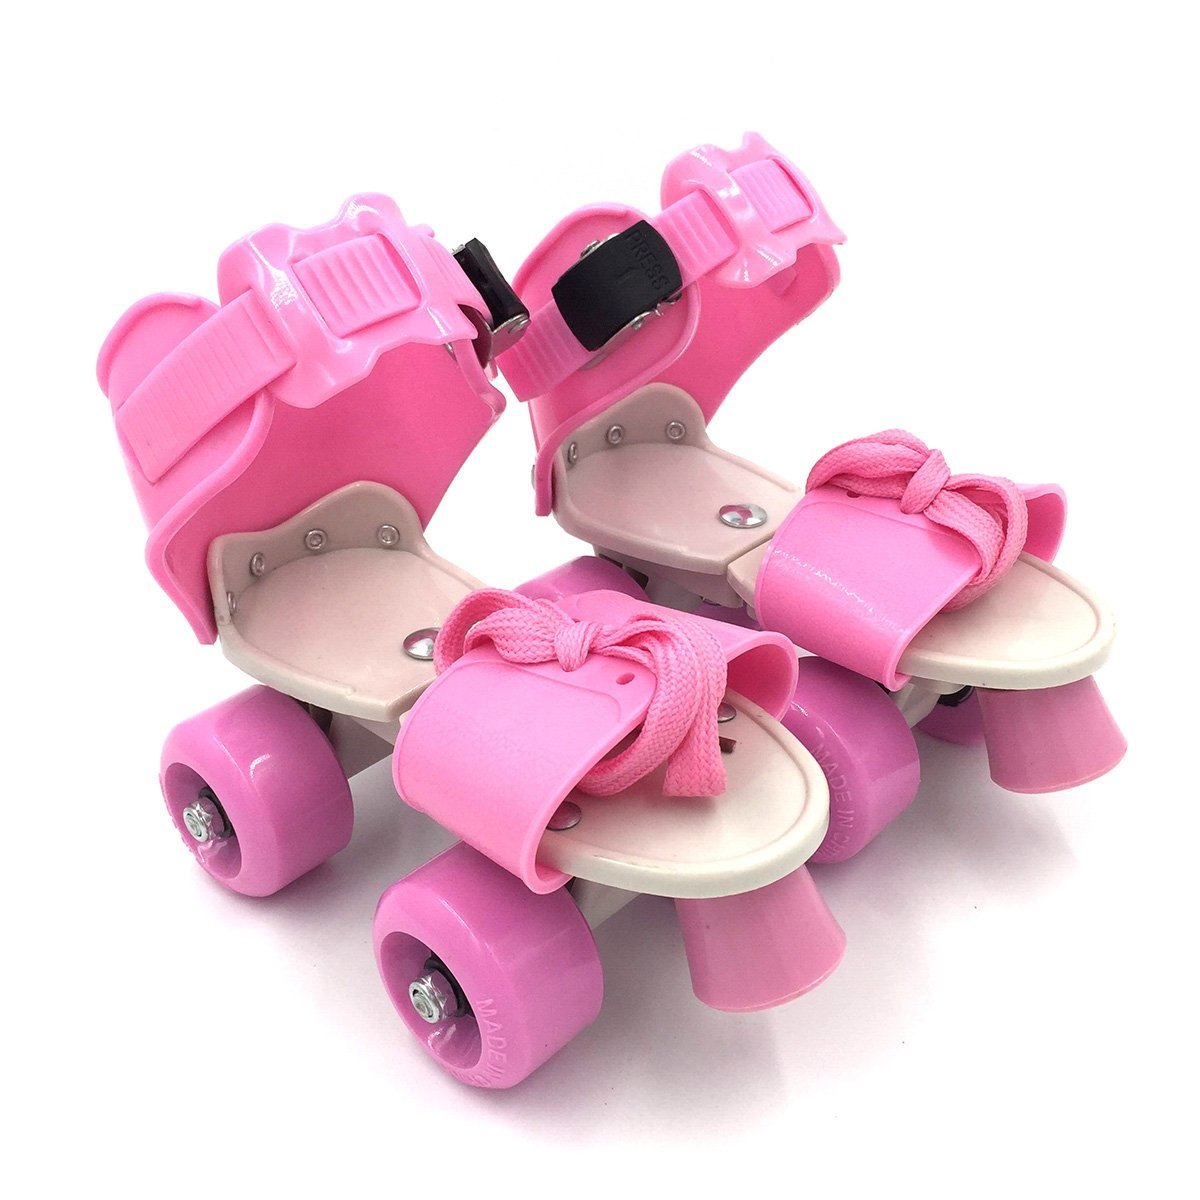 Outinpro Kid's Children's Adjustable Speed Quad Roller Skates Shoes (Pink)